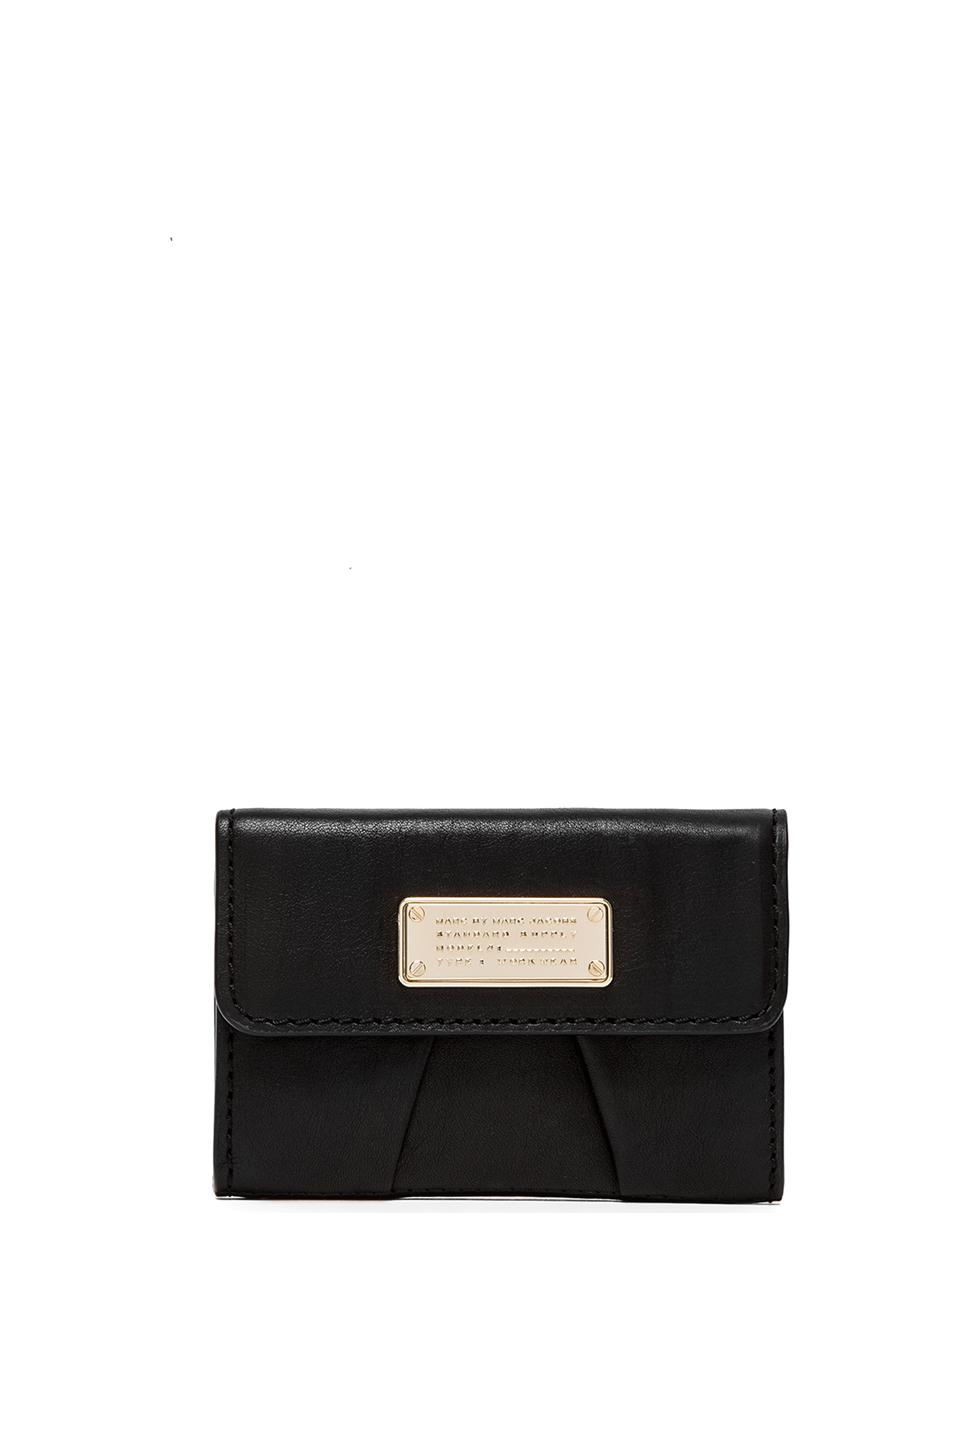 Marc by Marc Jacobs Marchive Card Case in Black